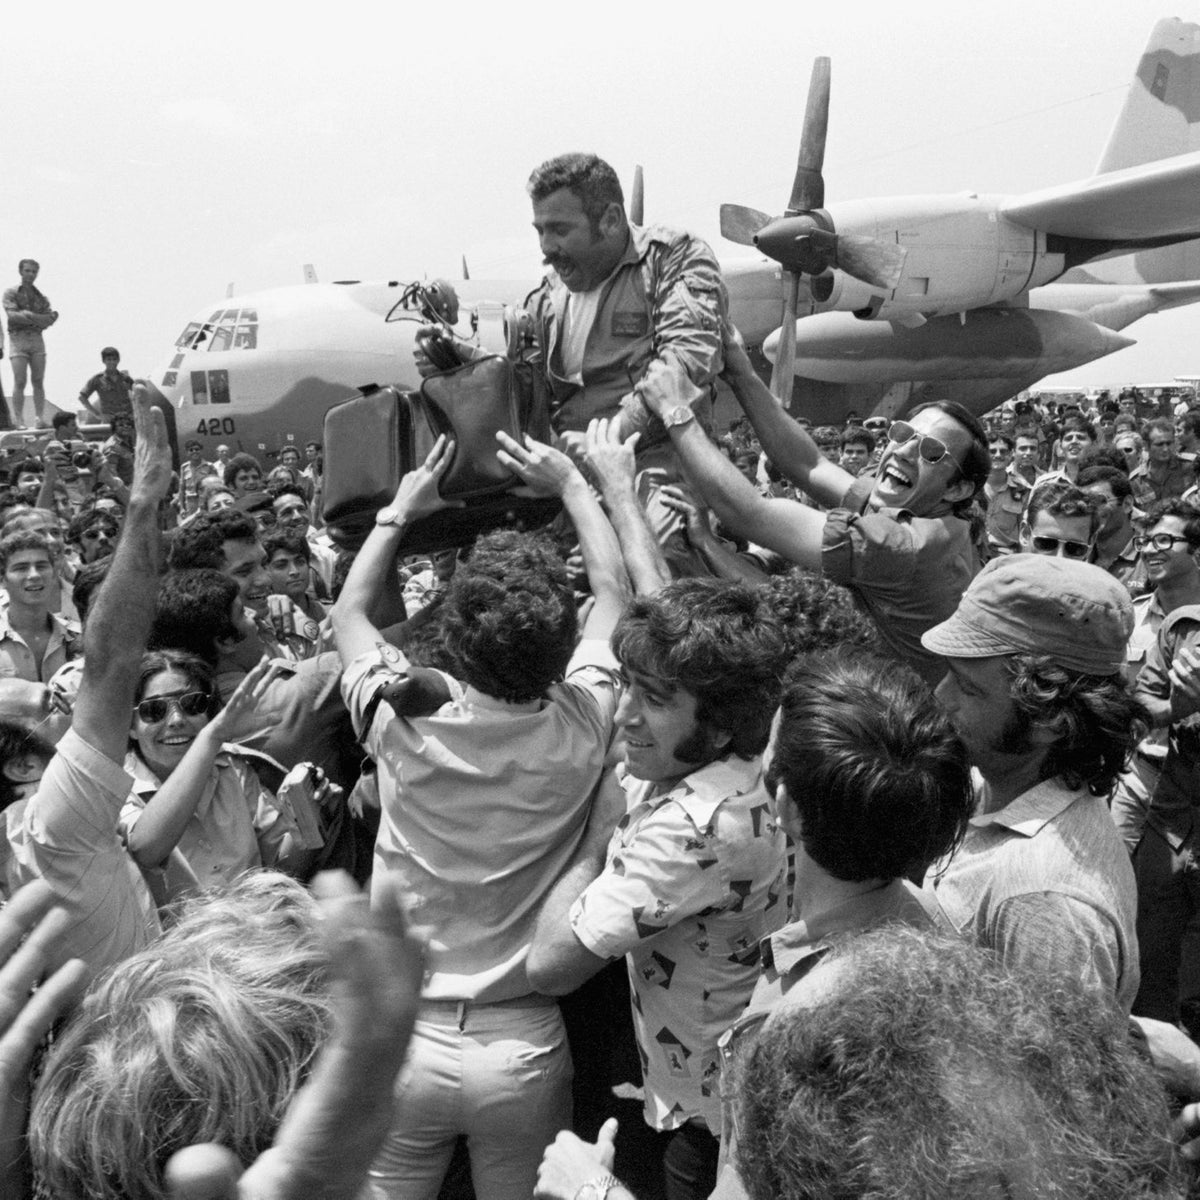 The crowd lifting the squadron leader of the rescue planes on their return to Israel from Entebbe in July 1976.